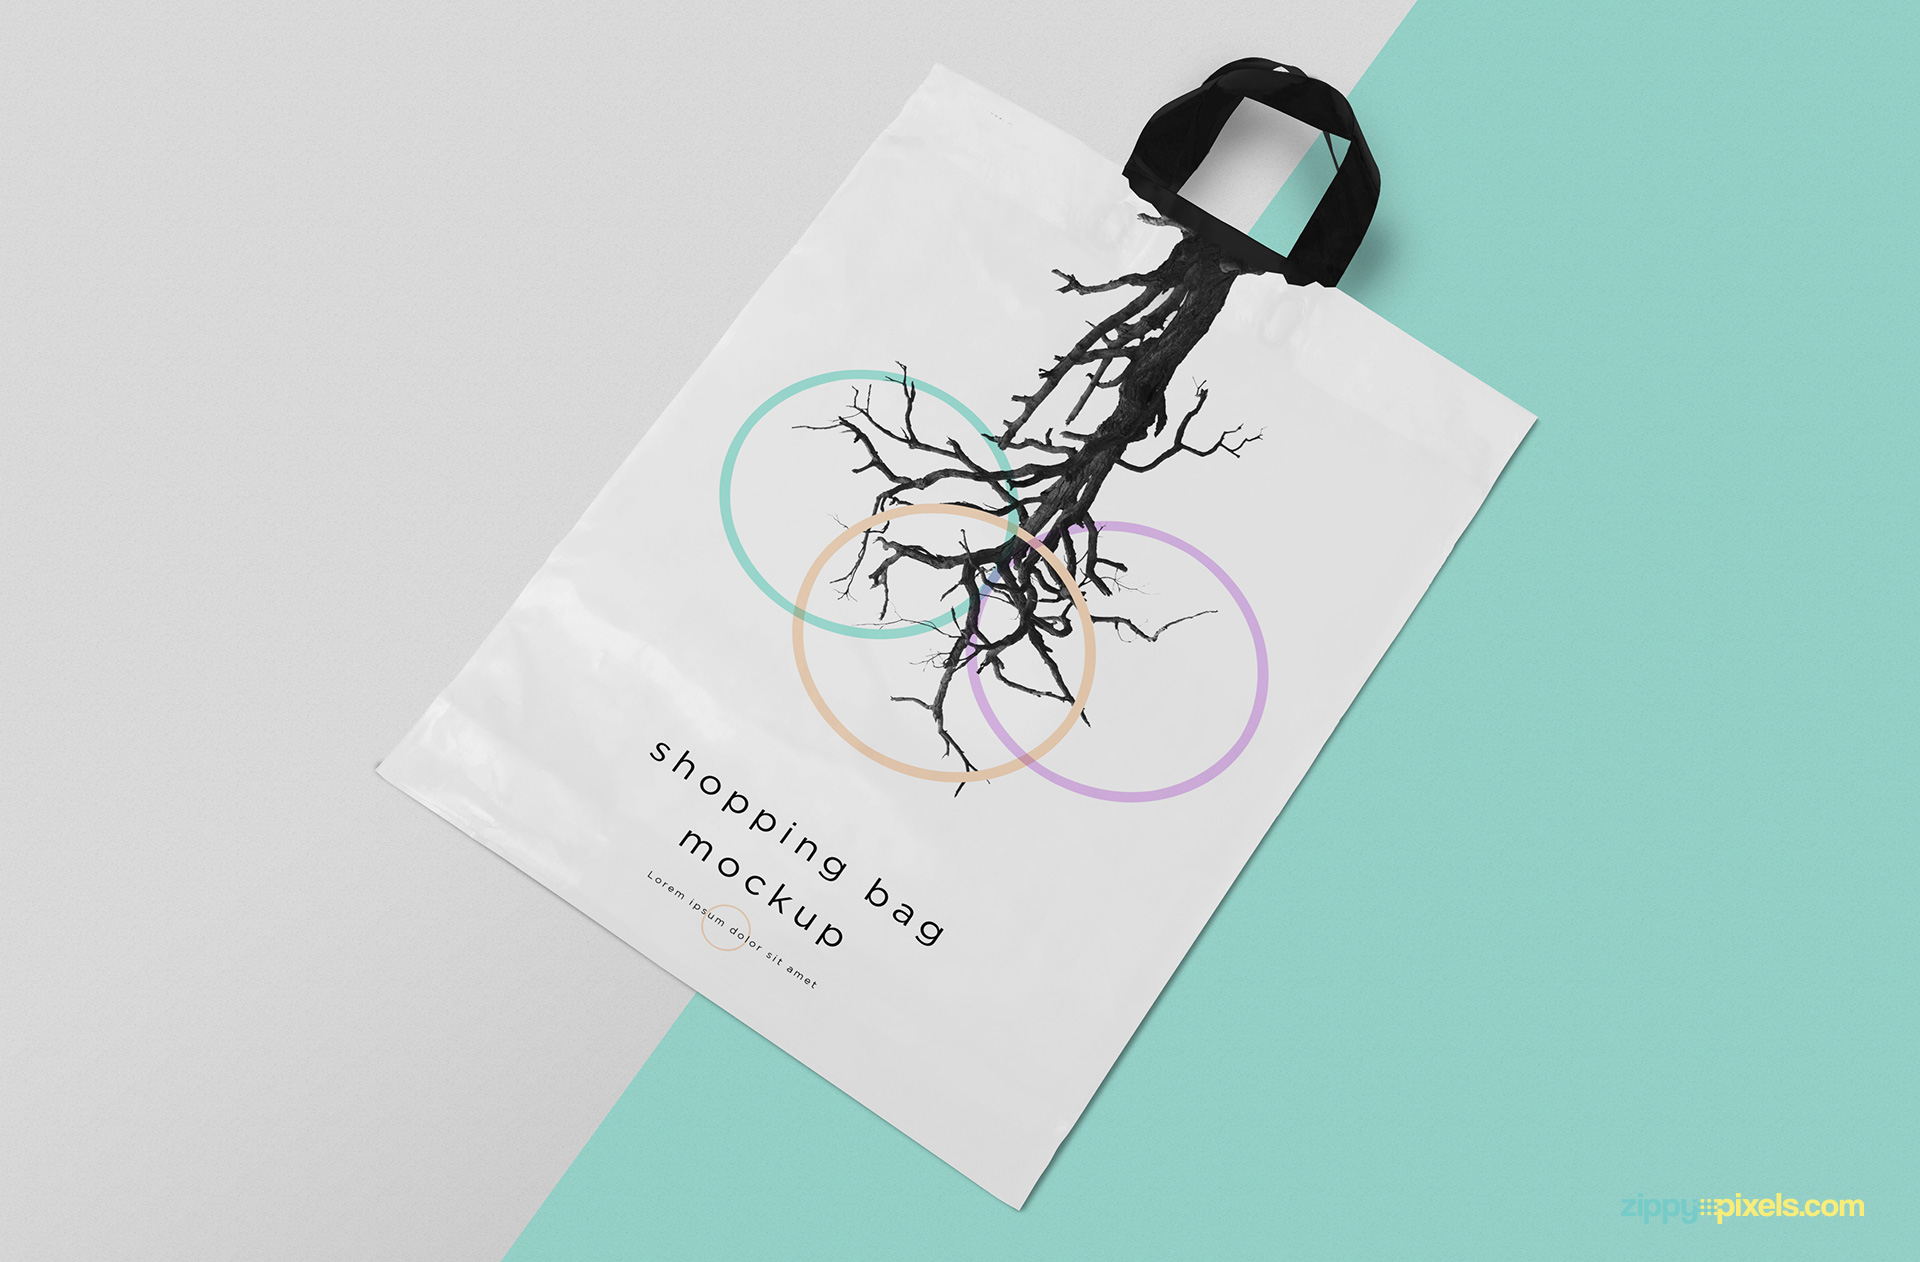 Shopping bag mockup free PSD.